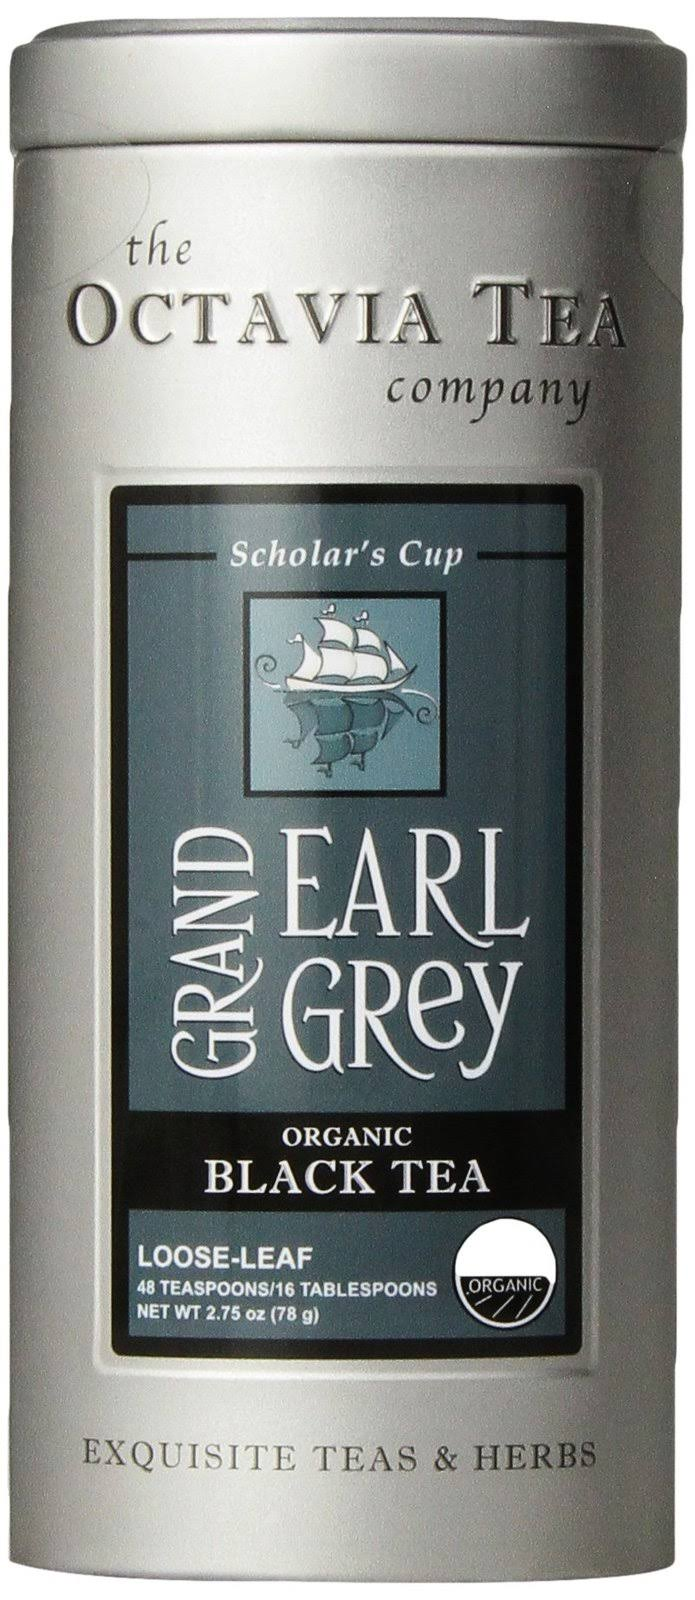 Octavia Organic Black Tea, Grand Earl Grey - 3.5 oz canister